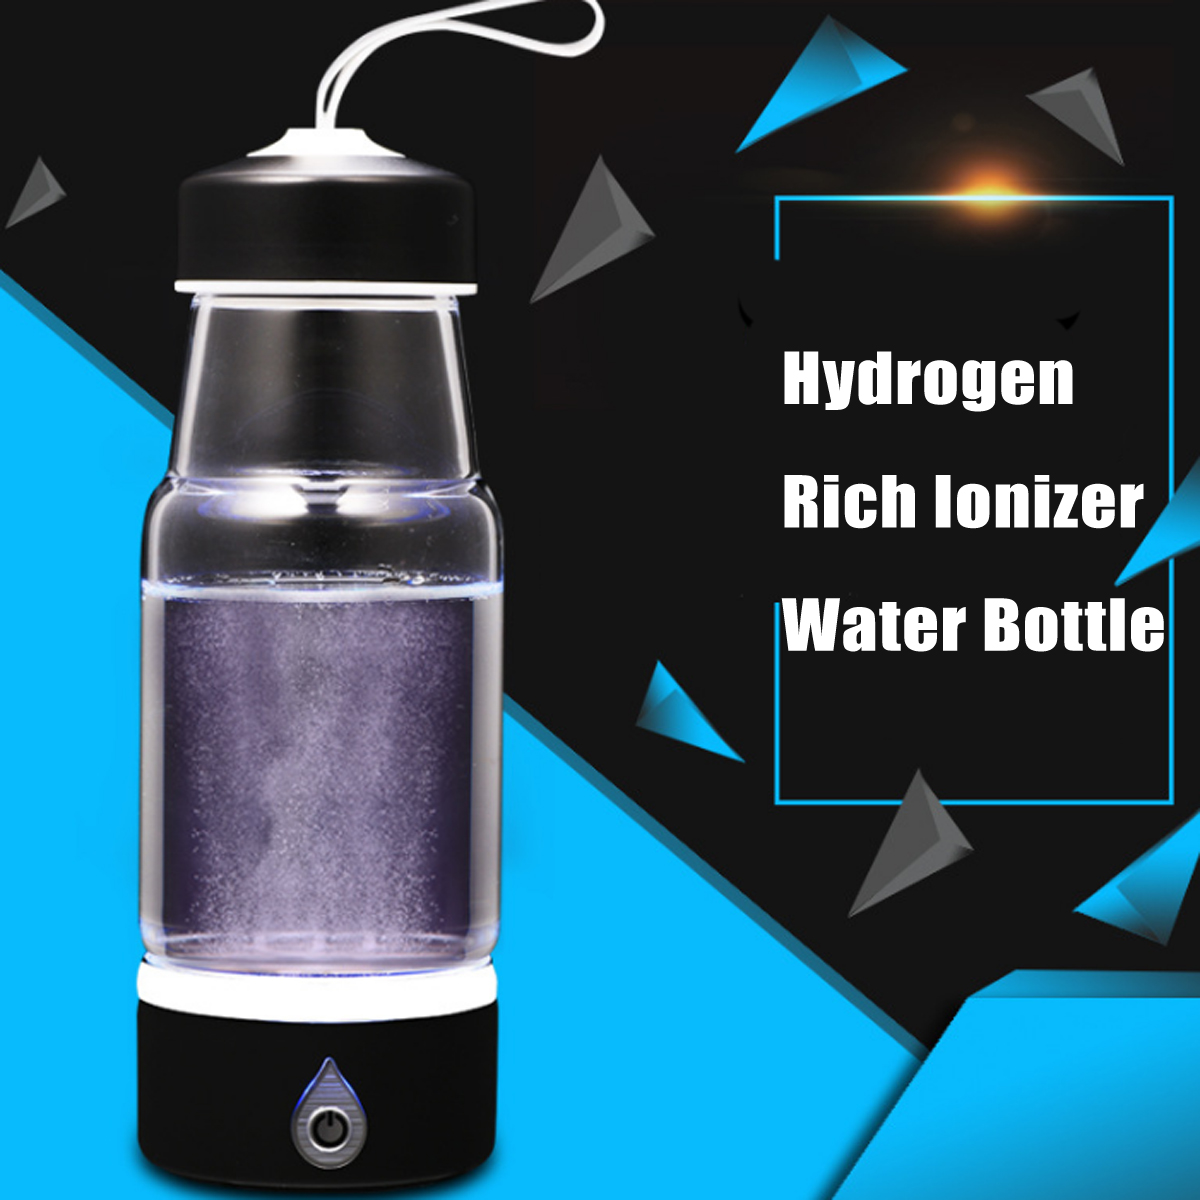 380ml Hydrogen Water Generator USB Rechargeable Intelligent Hydrogen Rich Water Bottles Alkaline Water Maker Portable Purifier380ml Hydrogen Water Generator USB Rechargeable Intelligent Hydrogen Rich Water Bottles Alkaline Water Maker Portable Purifier